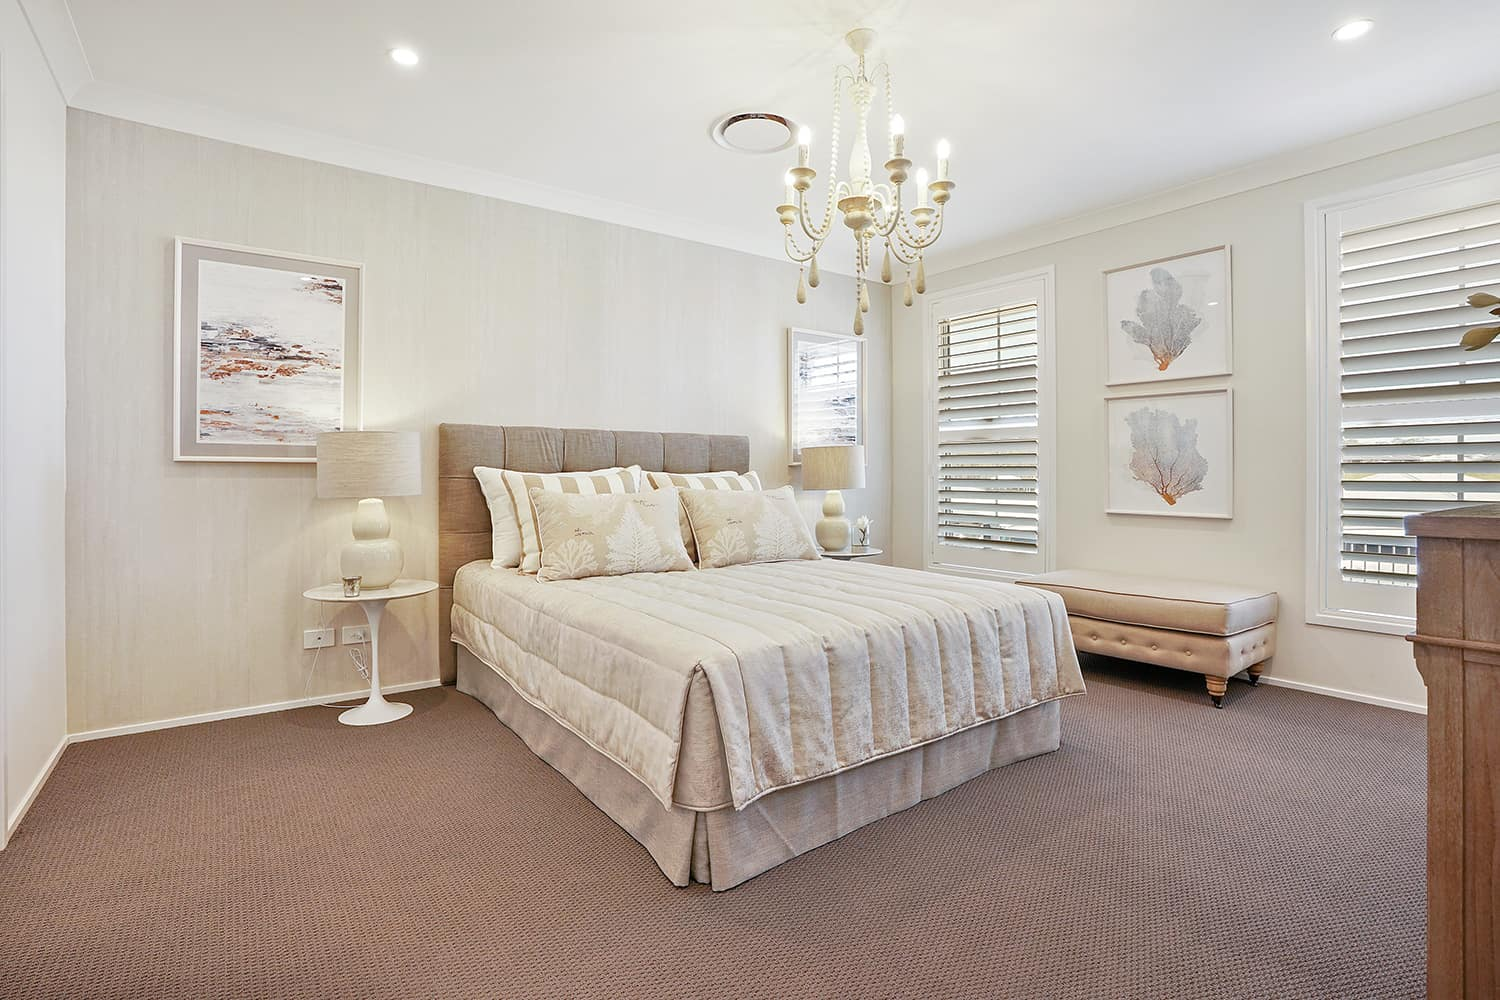 Harmony Four 23 - Main bedroom image. On display at Housing World Nowra